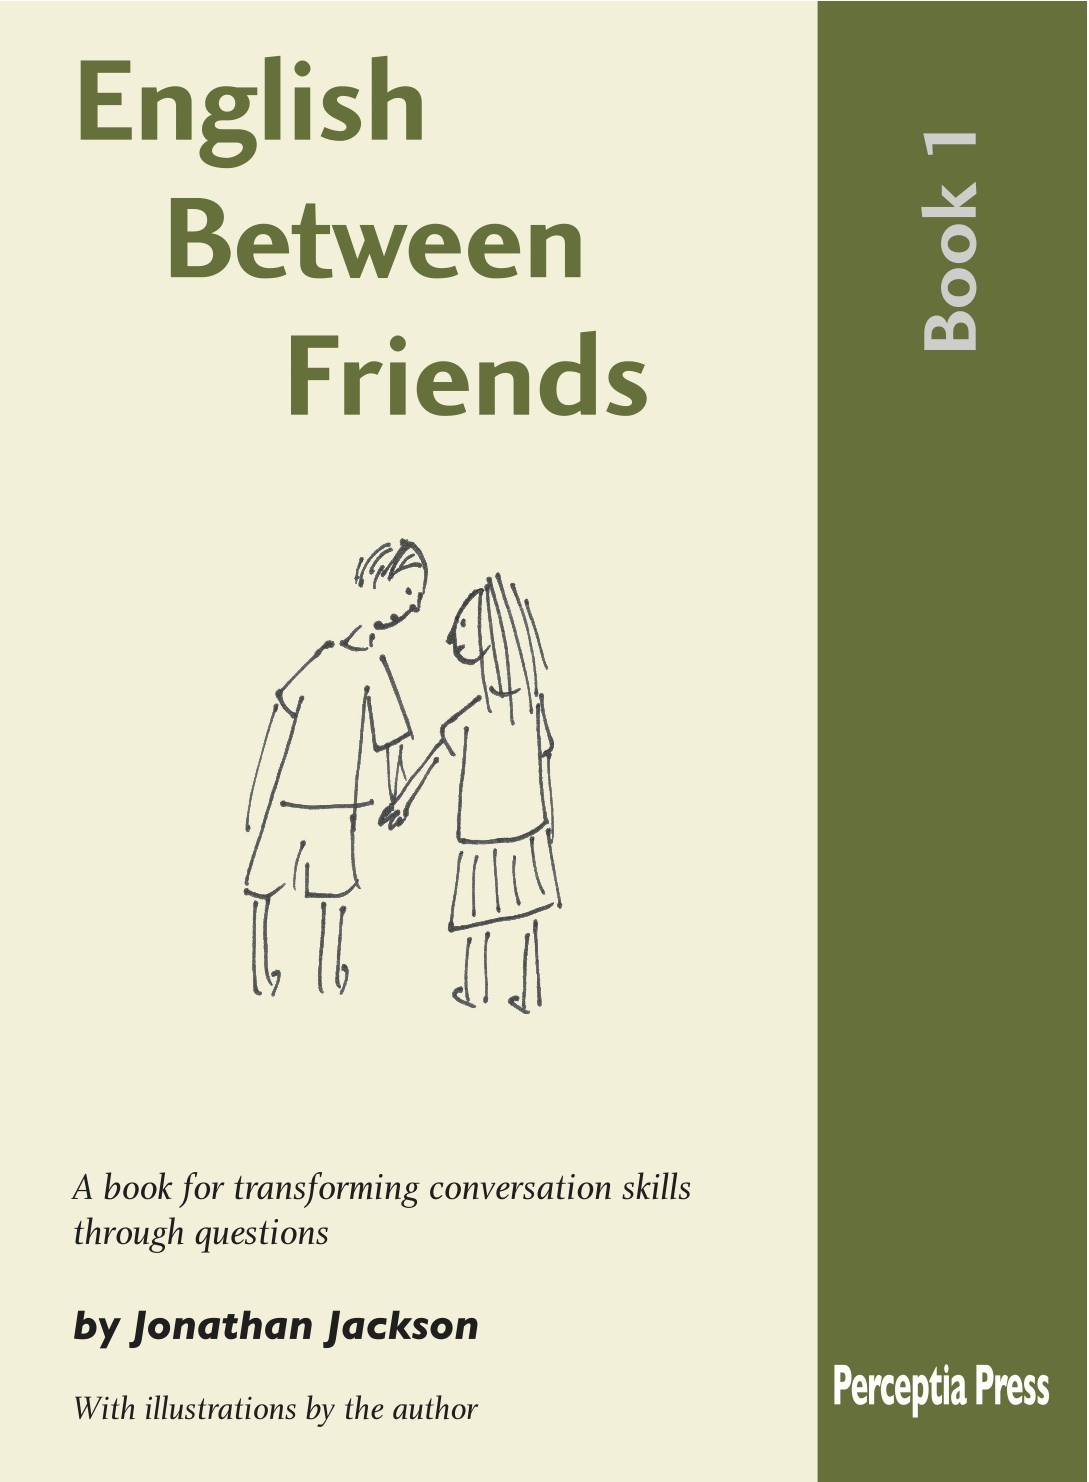 English Between Friends Book 1